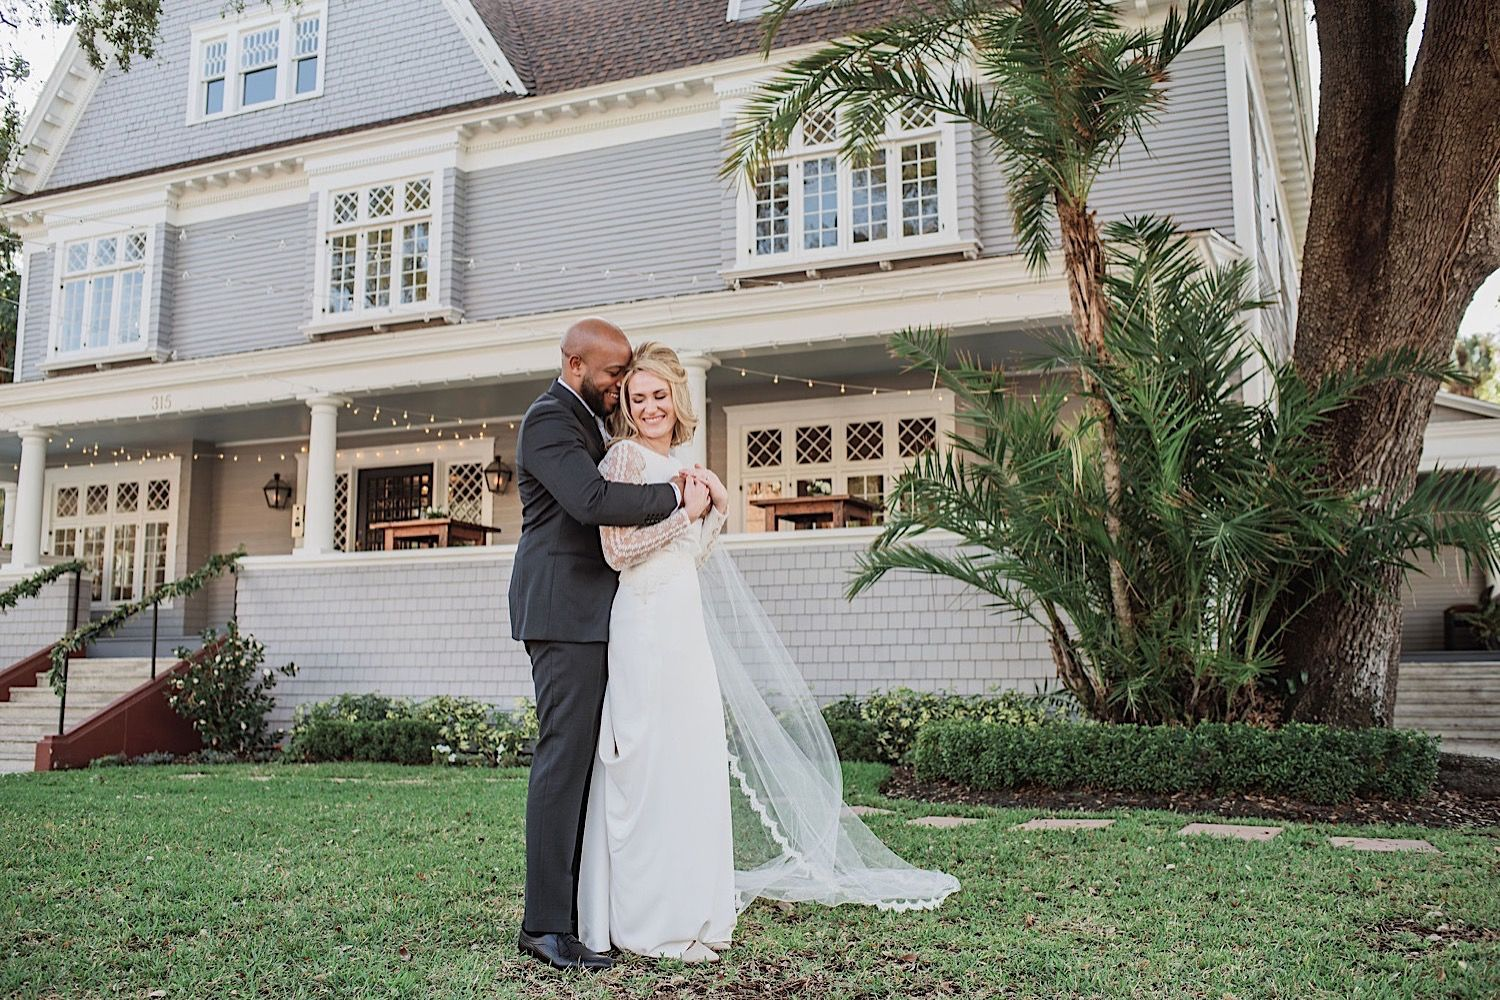 groom hugging bride in the front yard of the oral wedding venue